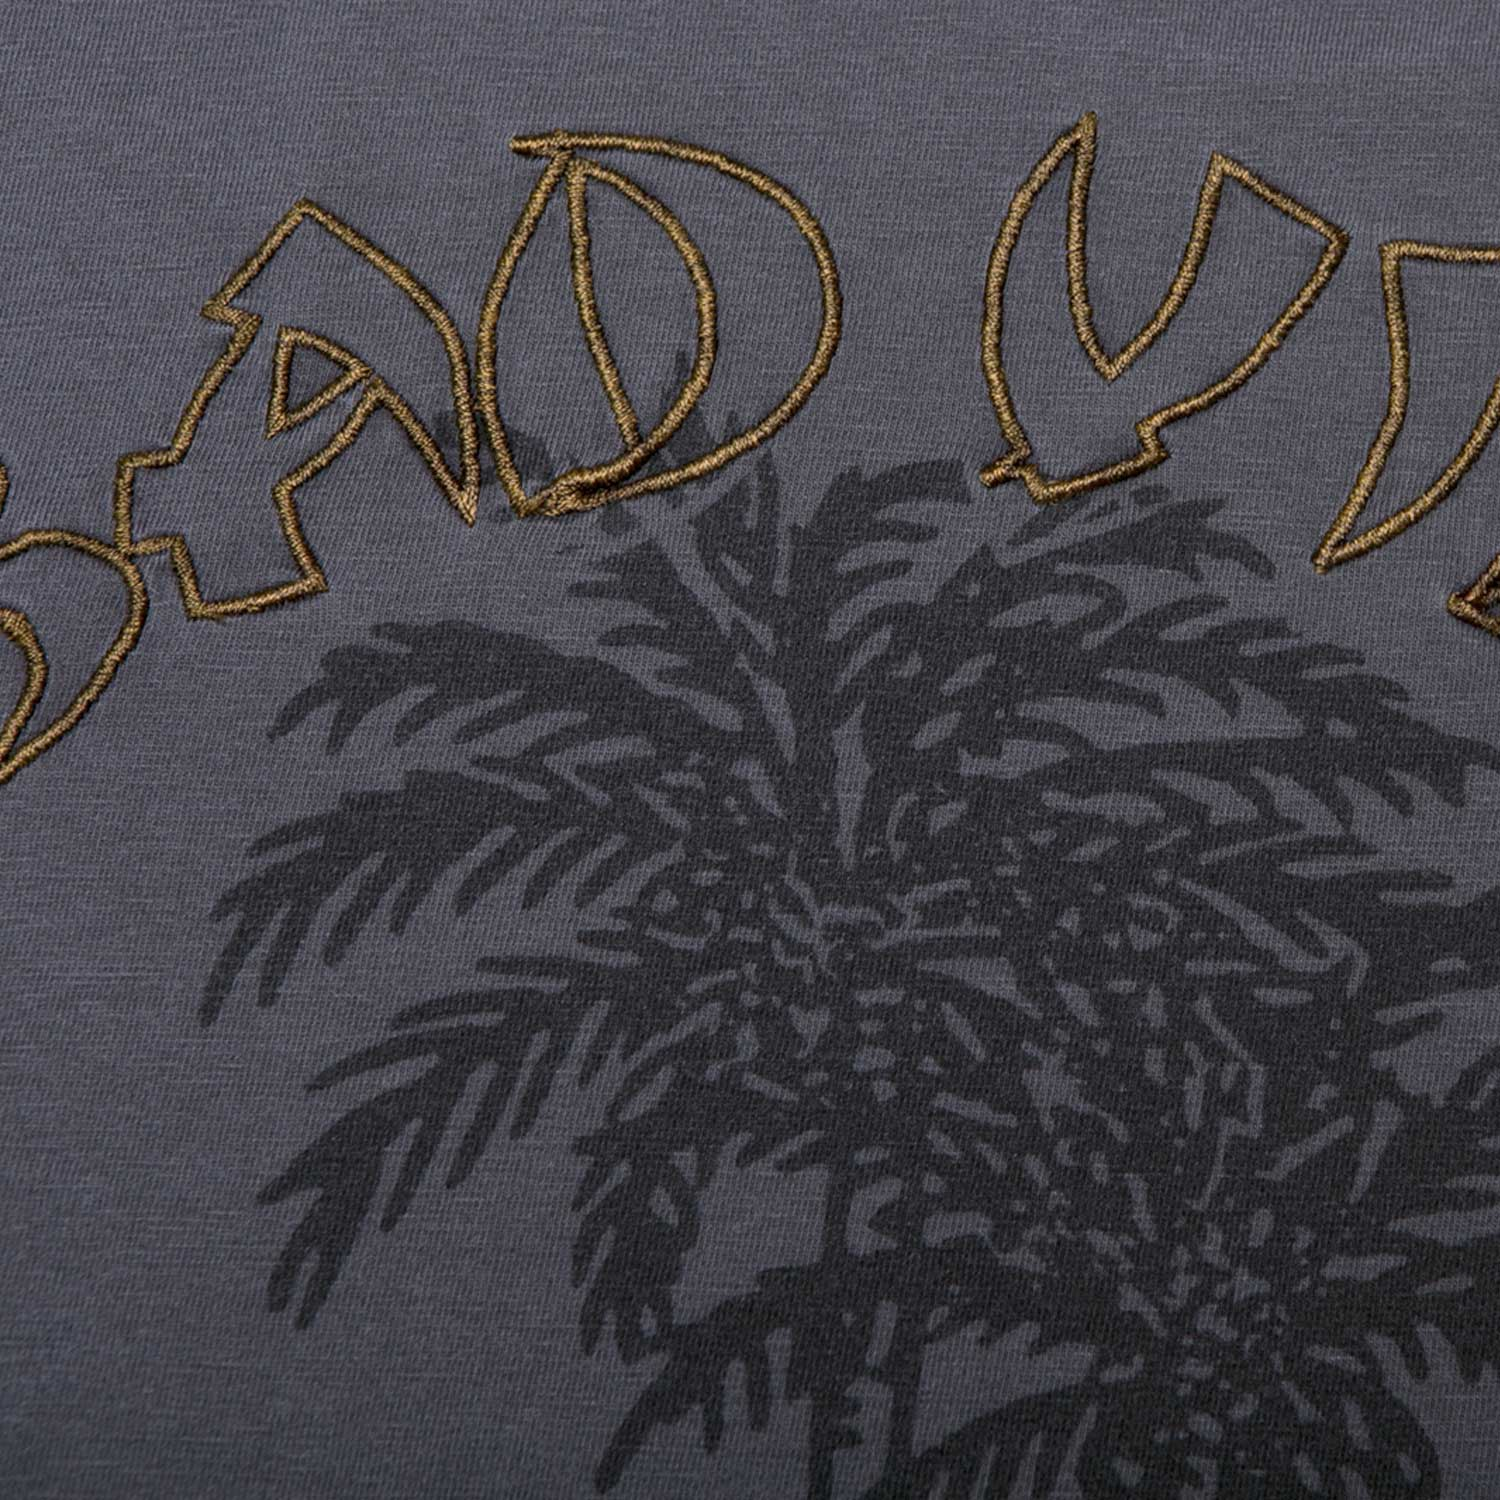 P&Co - Black Womens T-Shirt Bad Vibes - Provision & Co